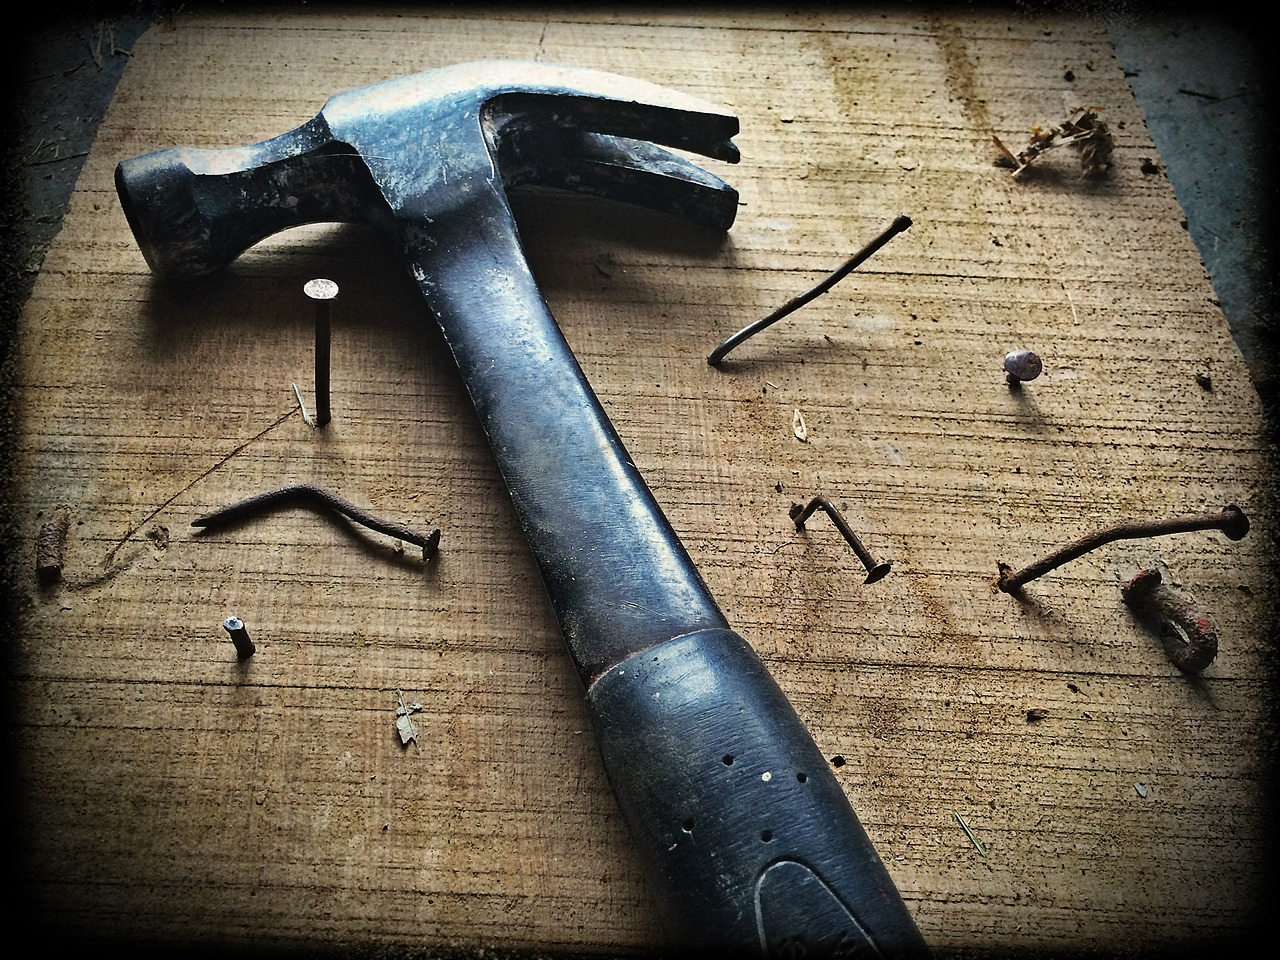 A hammer and deformed nails